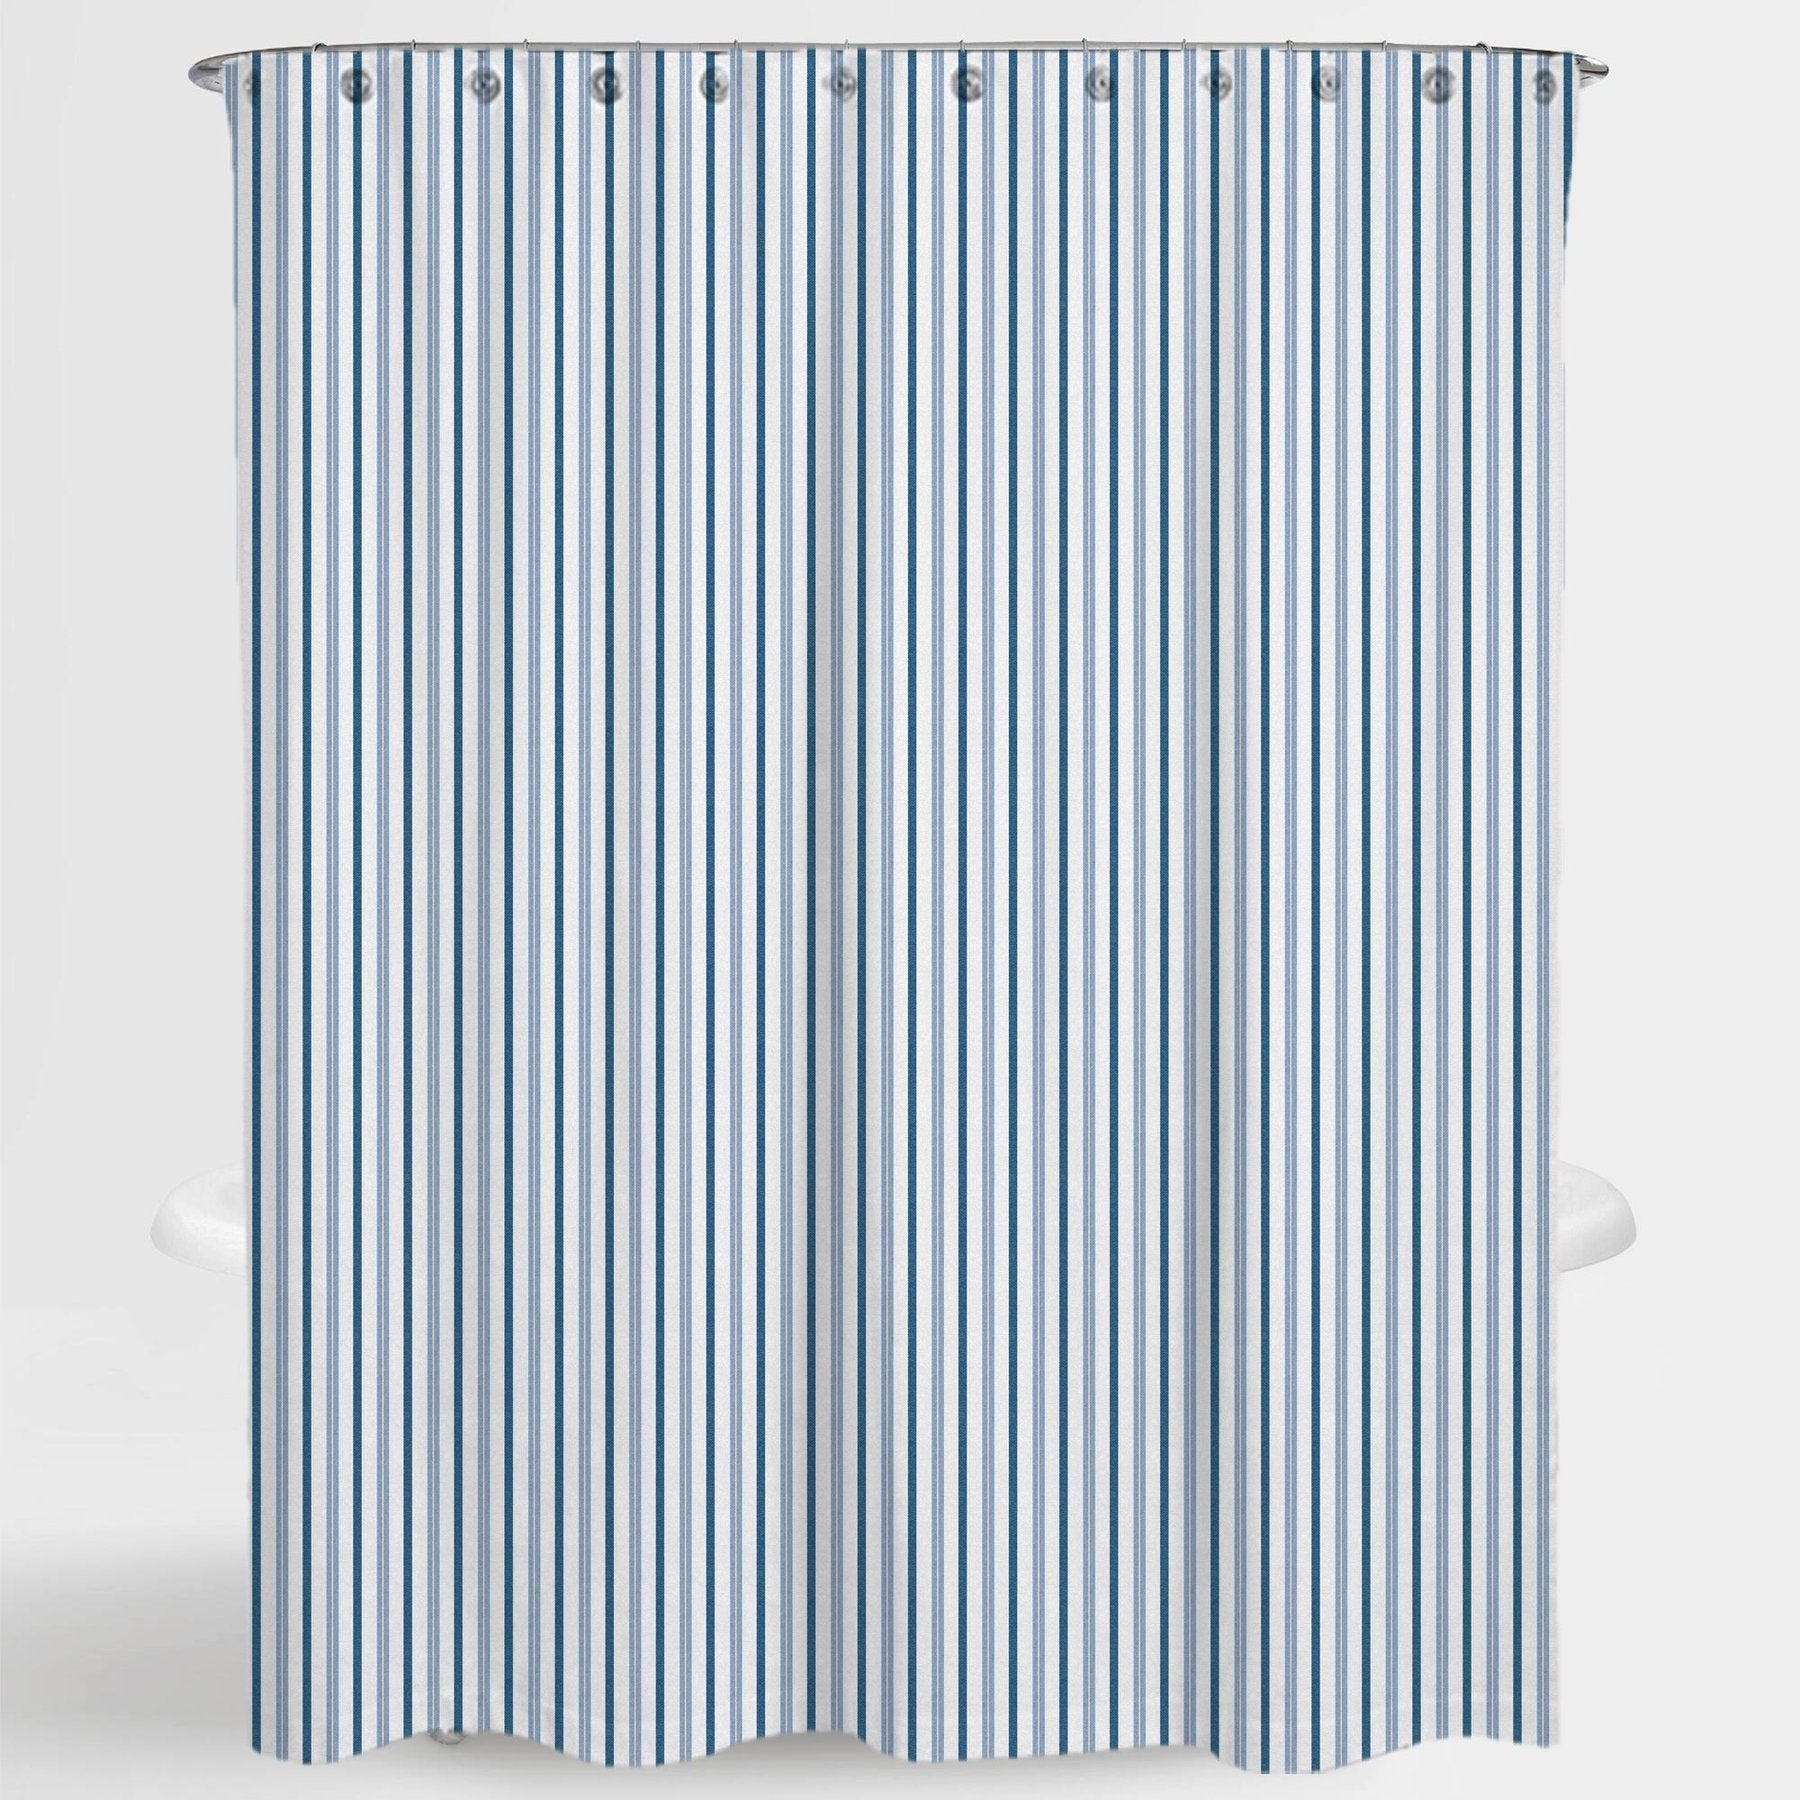 Stripe Blue Two Tone Resa Water Repellent Shower Curtain 72 X72 Free 12 Piece Shower Curtain Rings